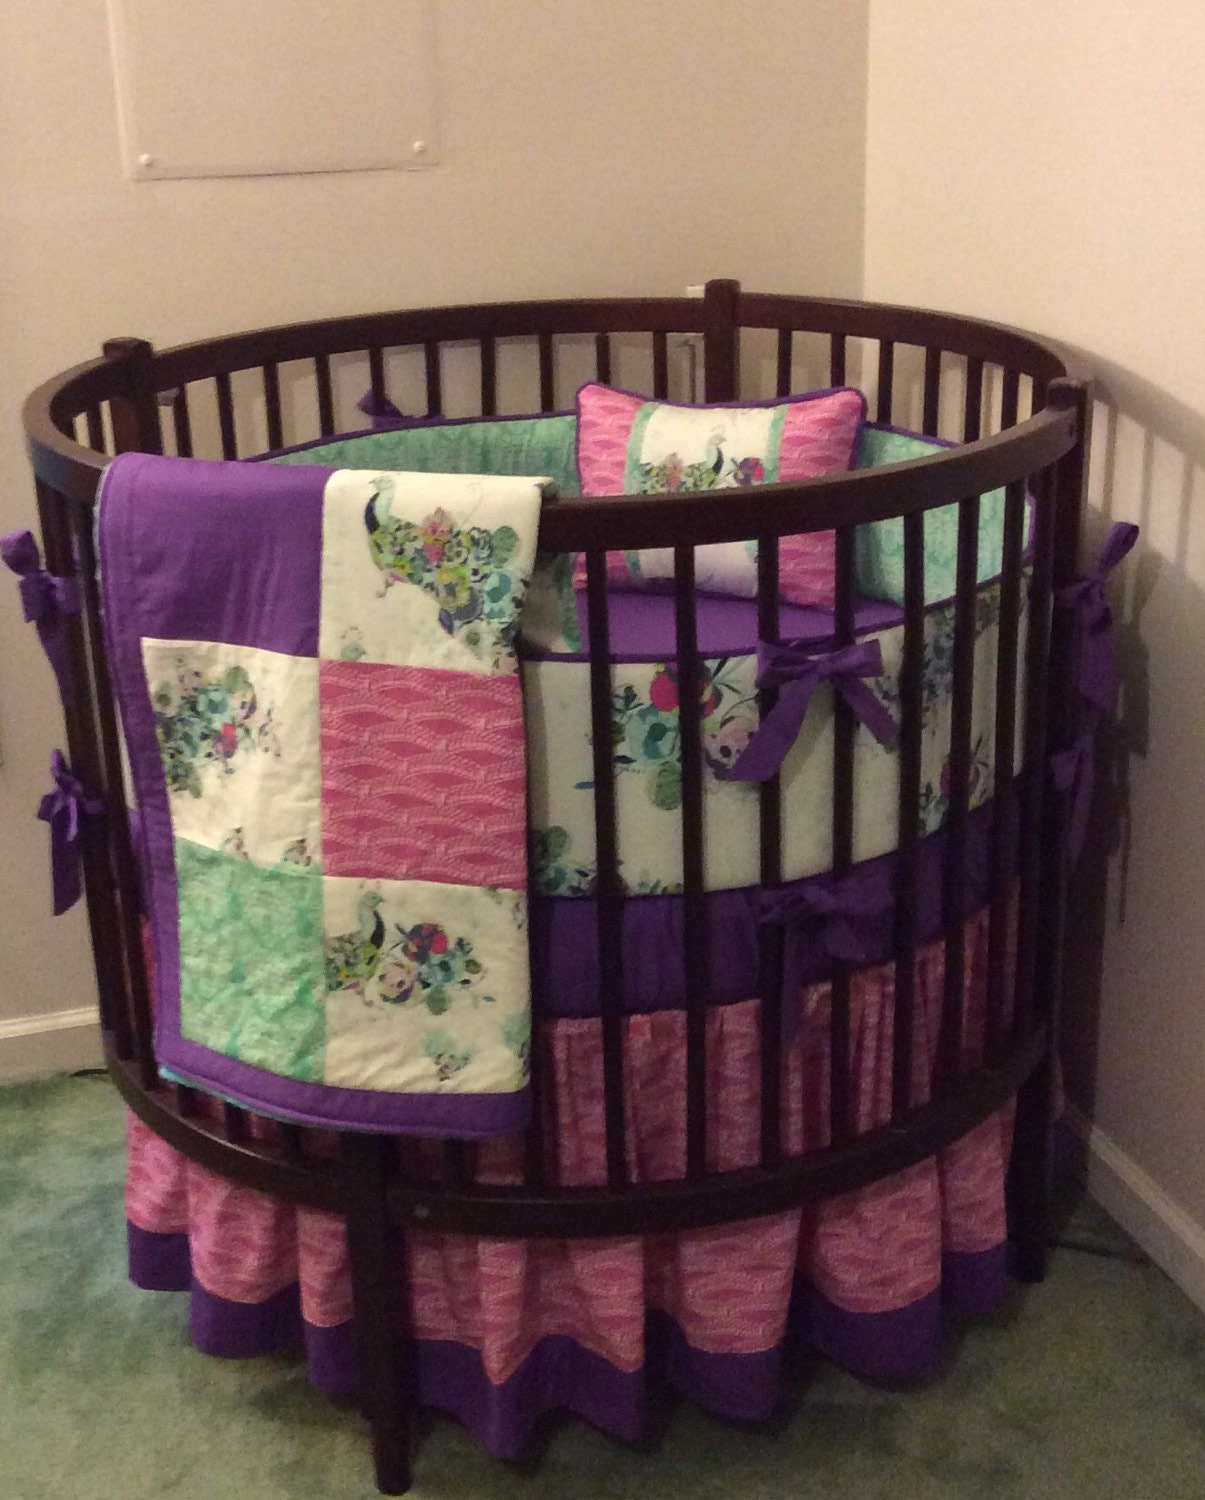 Crib bedding set gray white navy blue with by butterbeansboutique - Round Crib Bedding Set Teal Pink And Purple By Butterbeansboutique